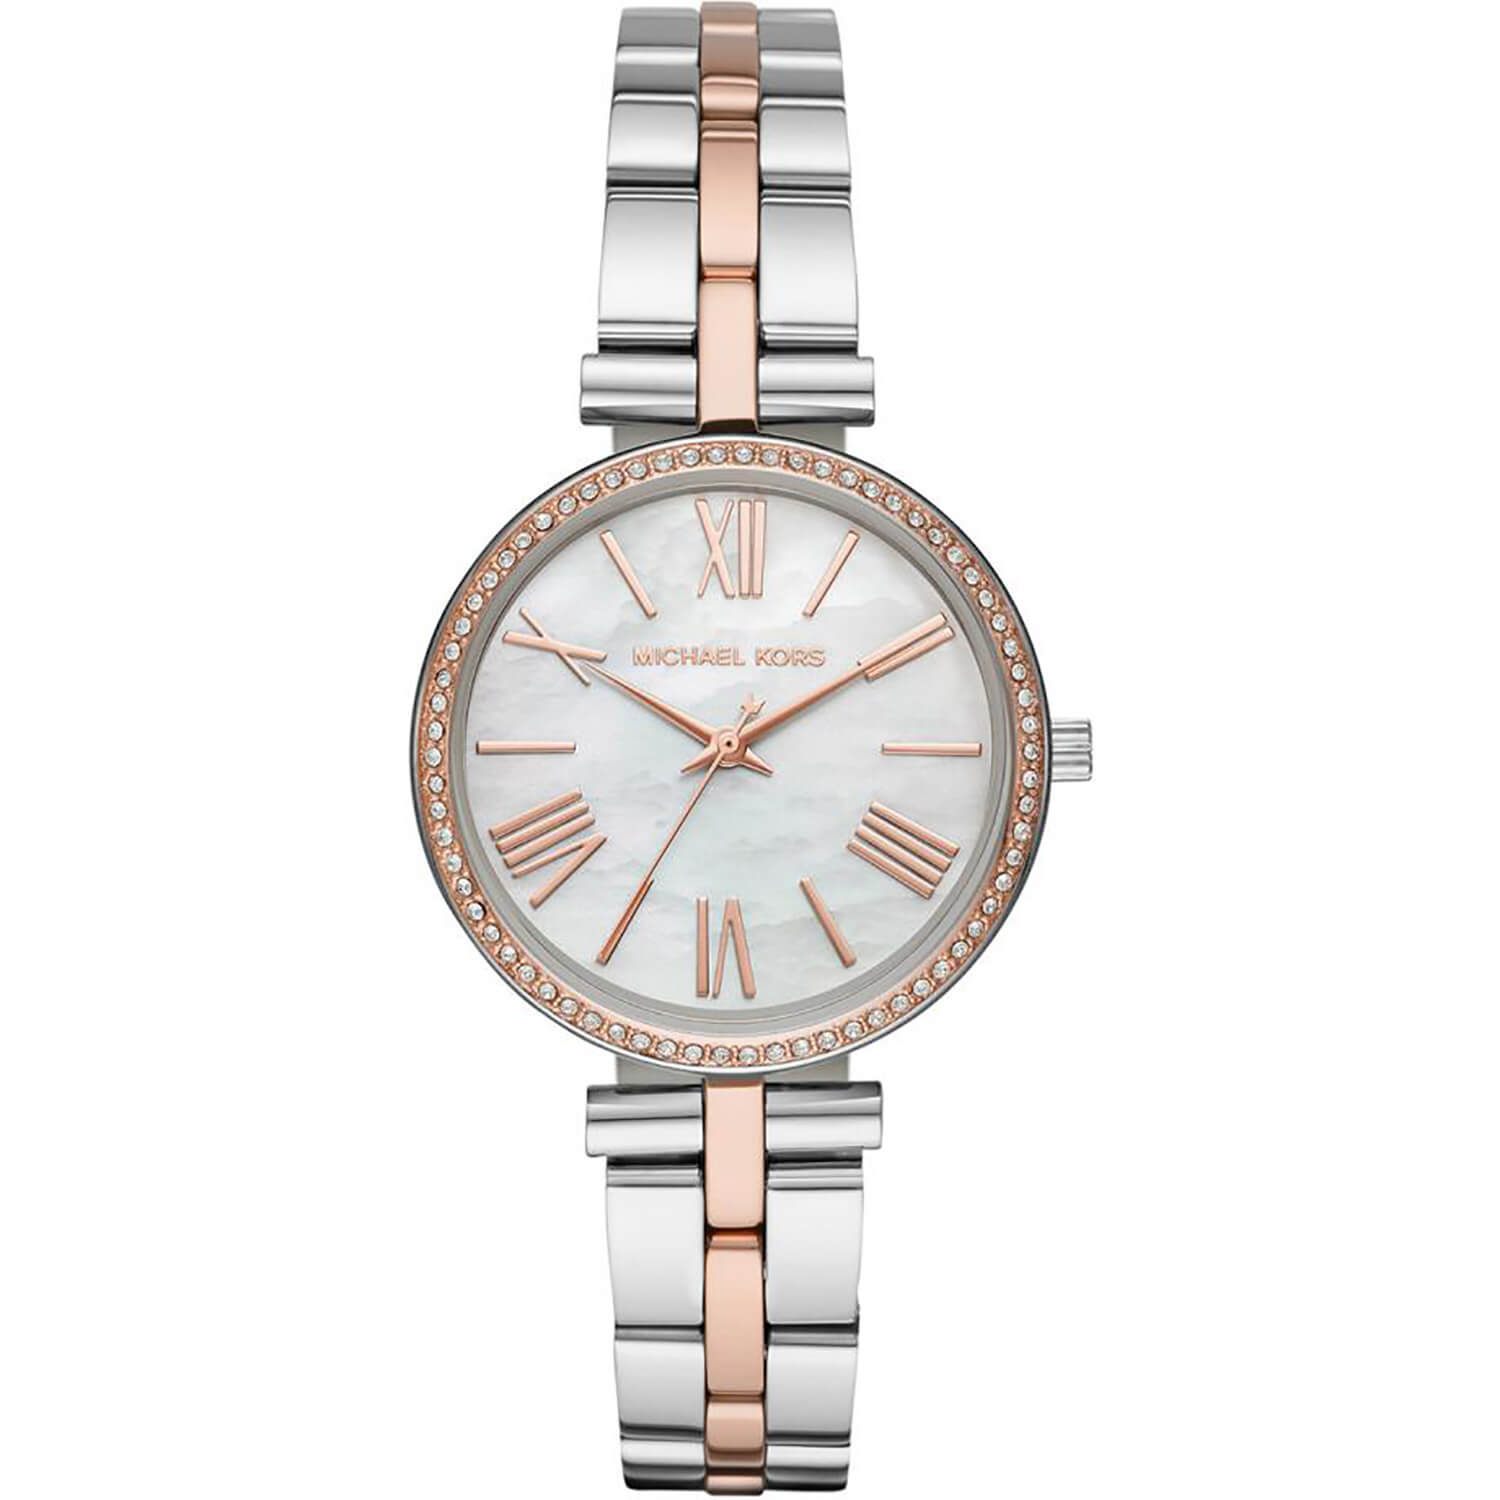 Michael Kors Maci Pearl & Crystal 34mm Ladies' Watch